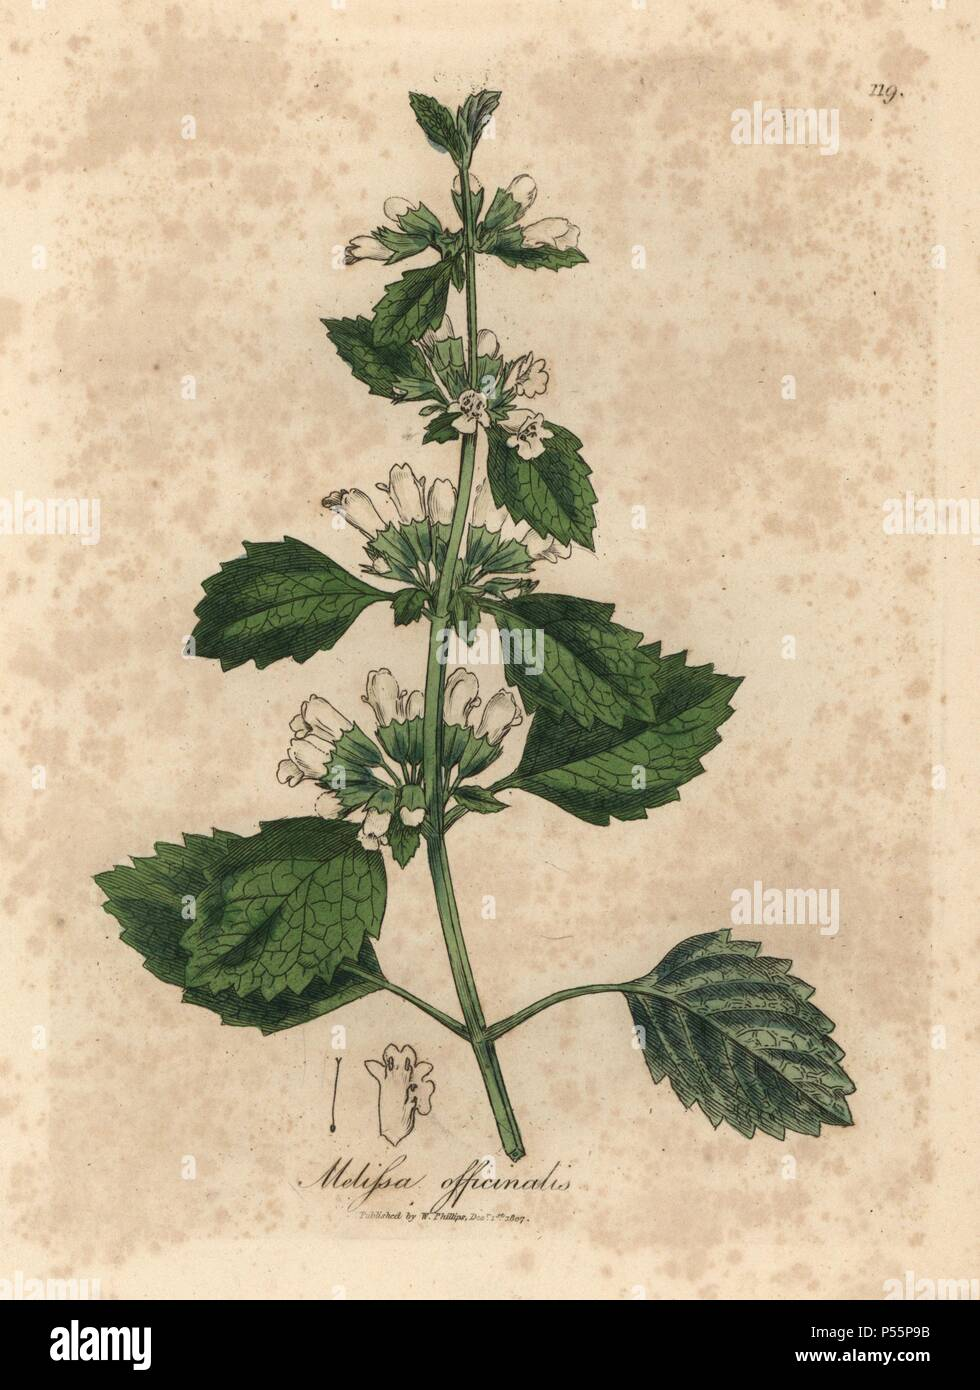 Common balm, Melissa officinalis. Handcoloured copperplate engraving from a botanical illustration by James Sowerby from William Woodville and Sir William Jackson Hooker's 'Medical Botany,' John Bohn, London, 1832. The tireless Sowerby (1757-1822) drew over 2, 500 plants for Smith's mammoth 'English Botany' (1790-1814) and 440 mushrooms for 'Coloured Figures of English Fungi ' (1797) among many other works. - Stock Image